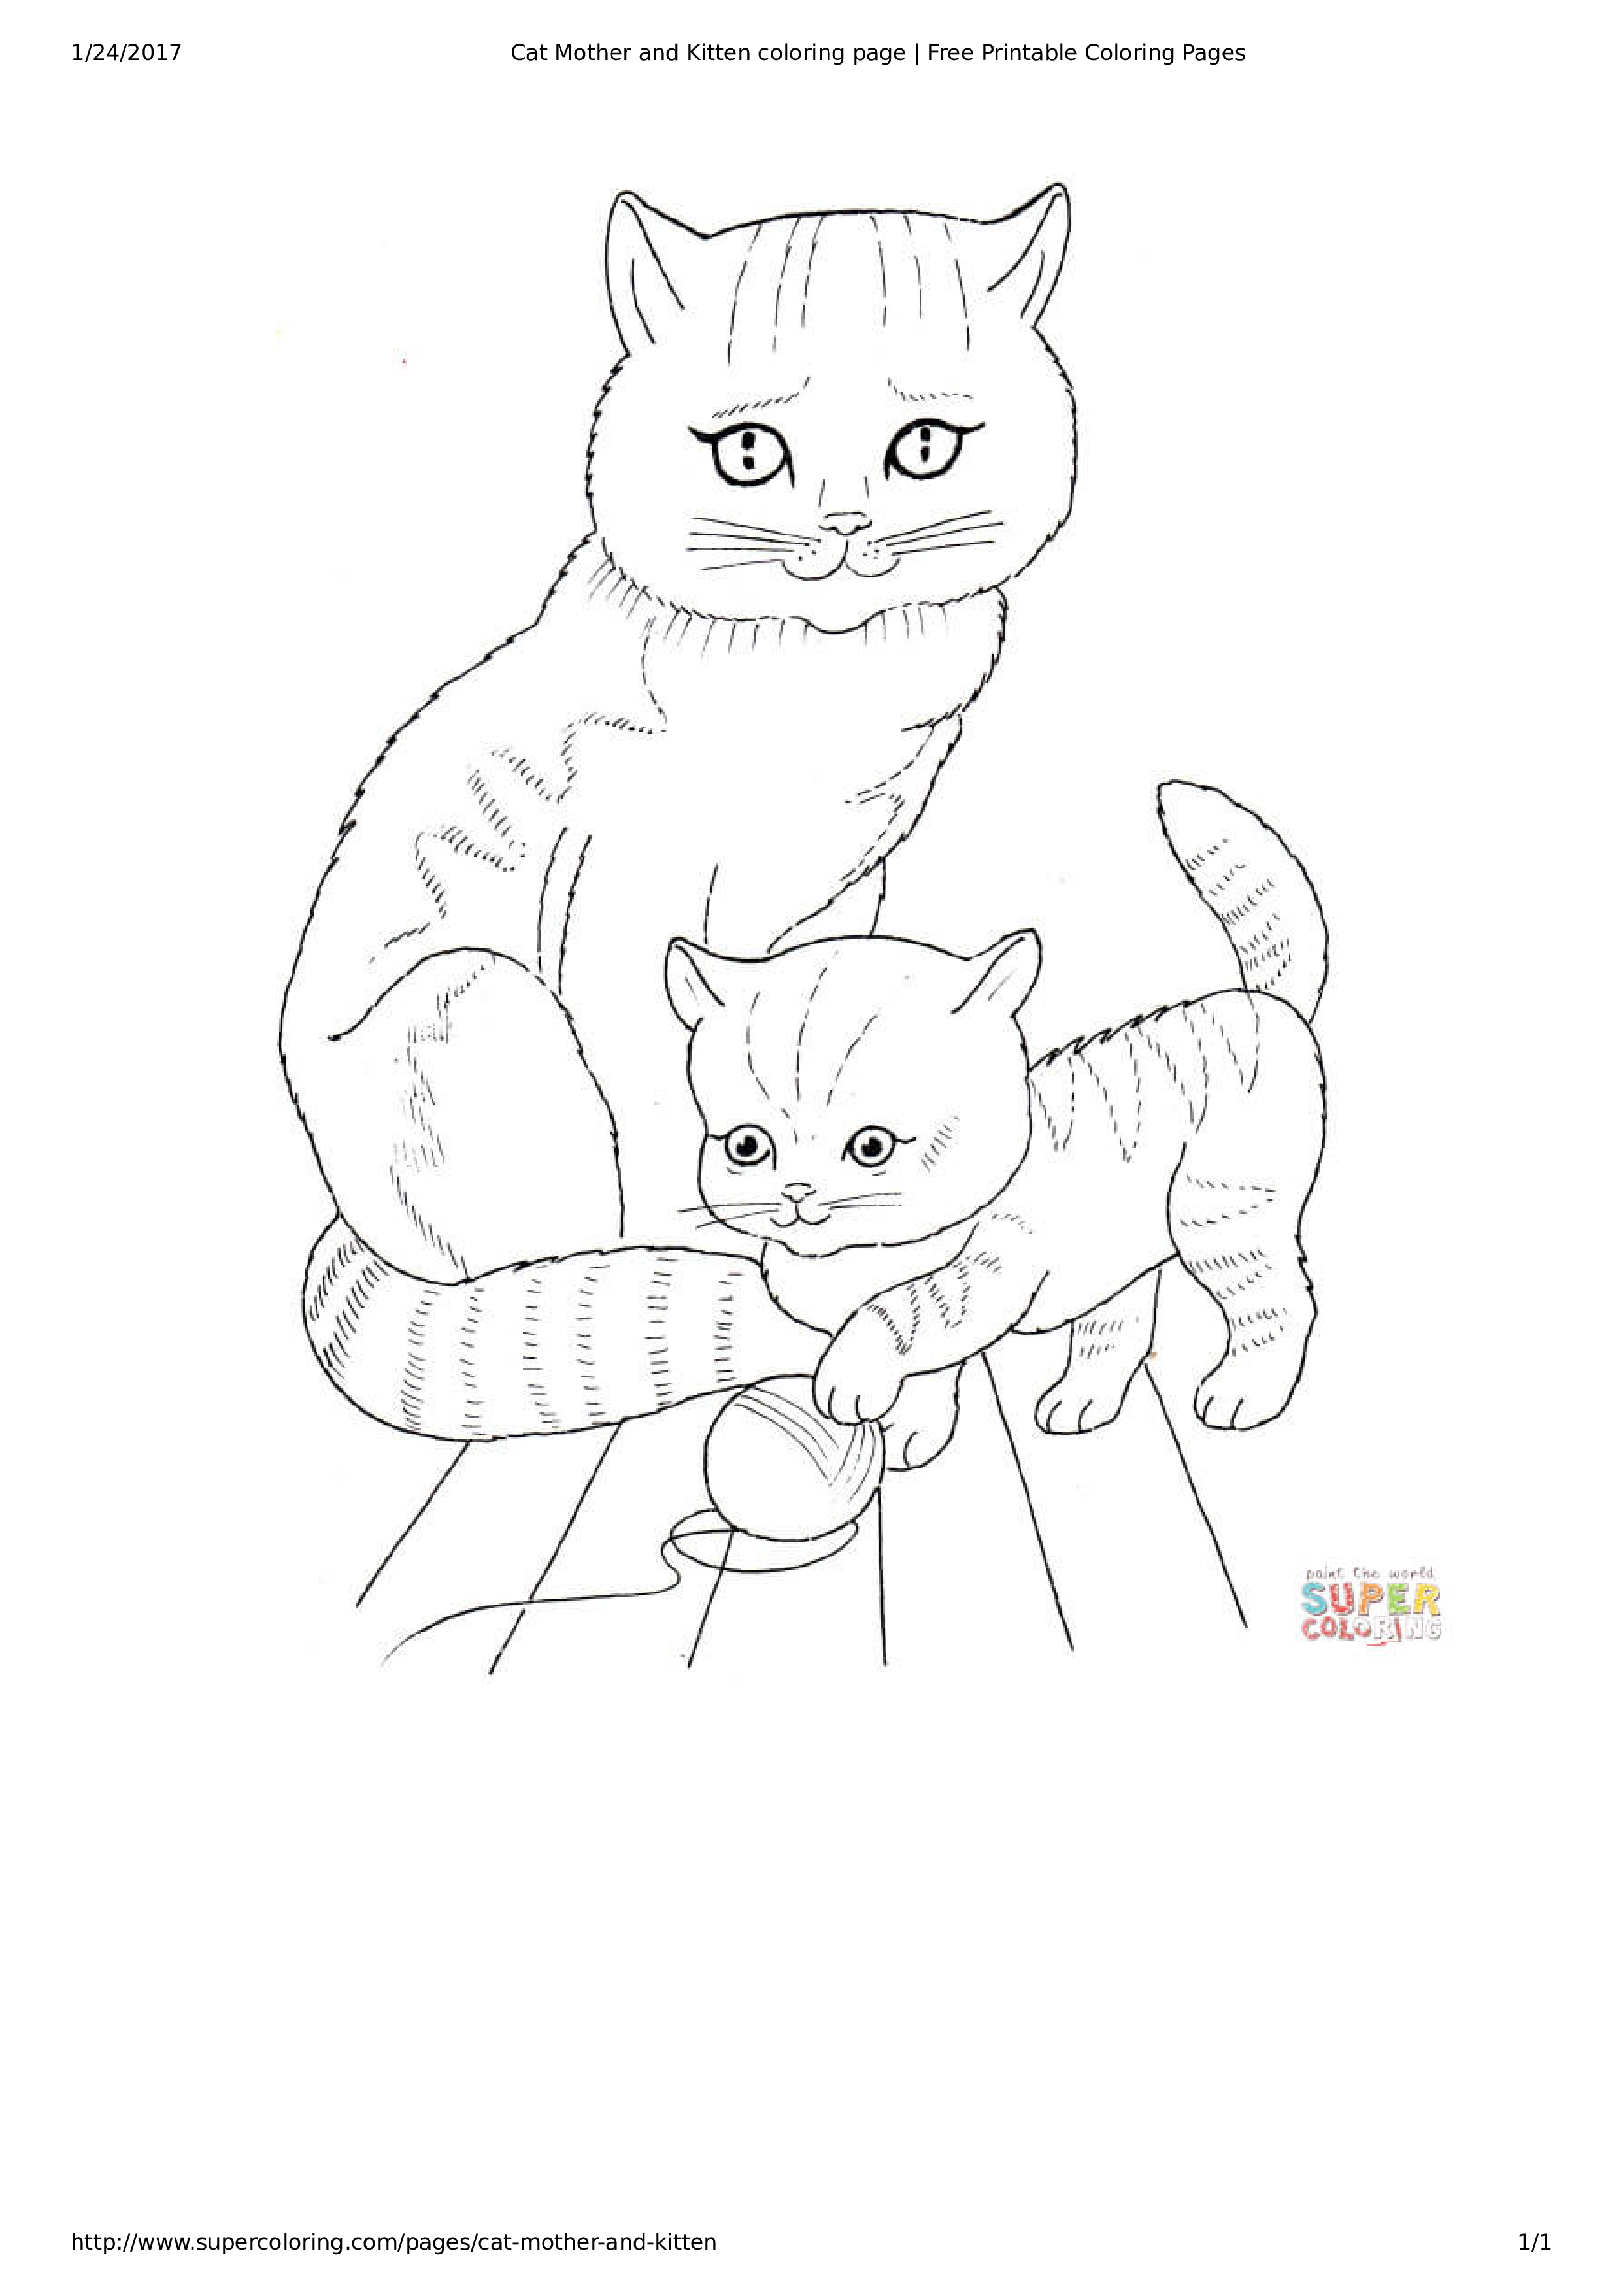 Cat And Kitten Coloring Page How To Create A Cat And Kitten Coloring Page Download This Cat And Kitt Puppy Coloring Pages Cat Coloring Page Kittens Coloring